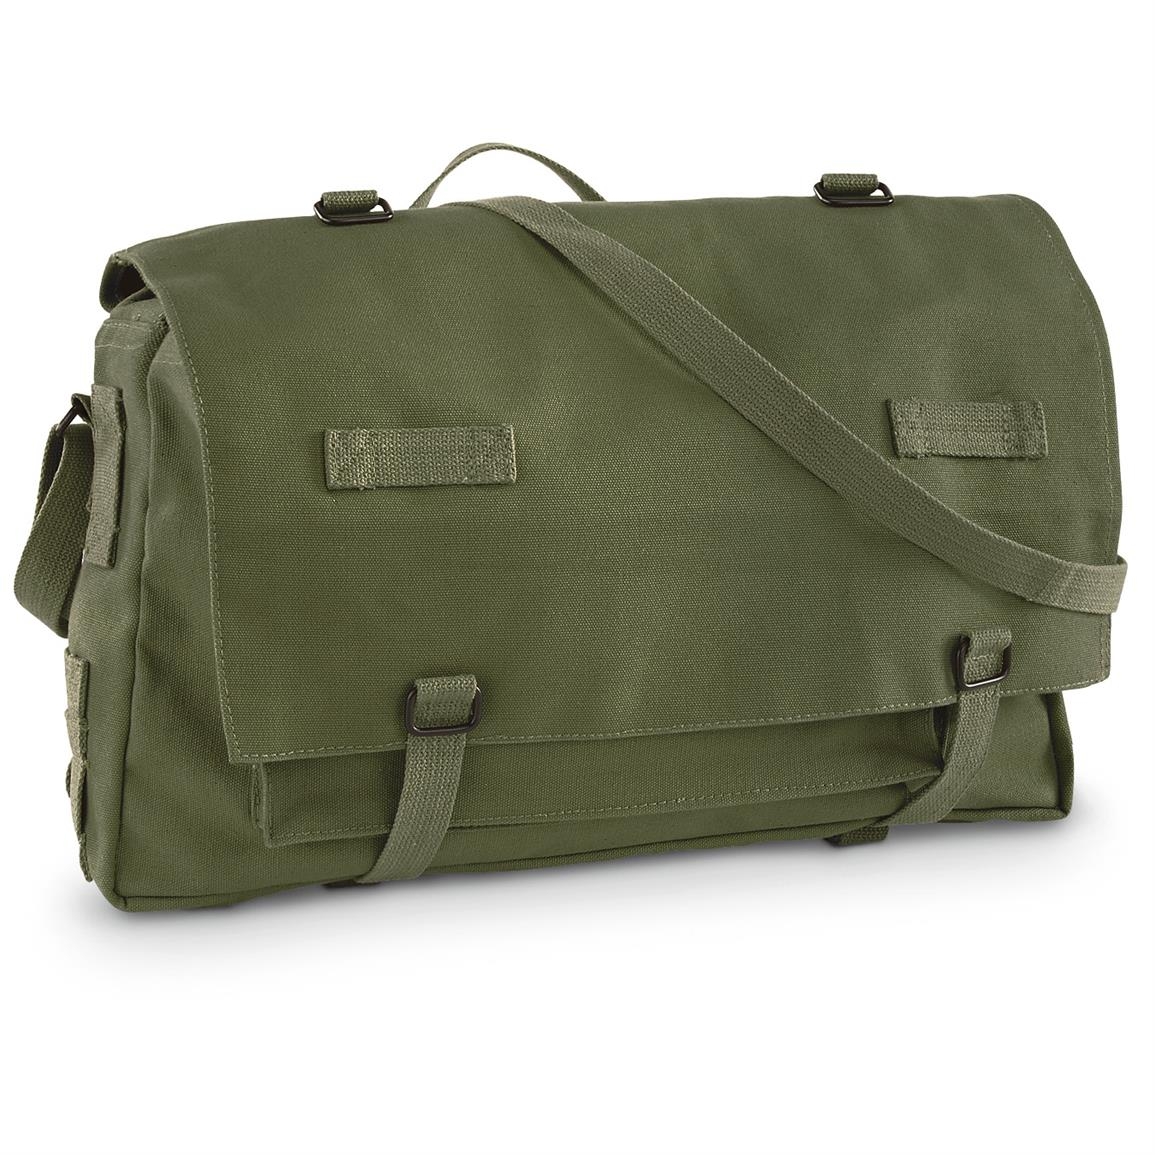 German Military-style Jumbo Rations Bag, Olive Drab